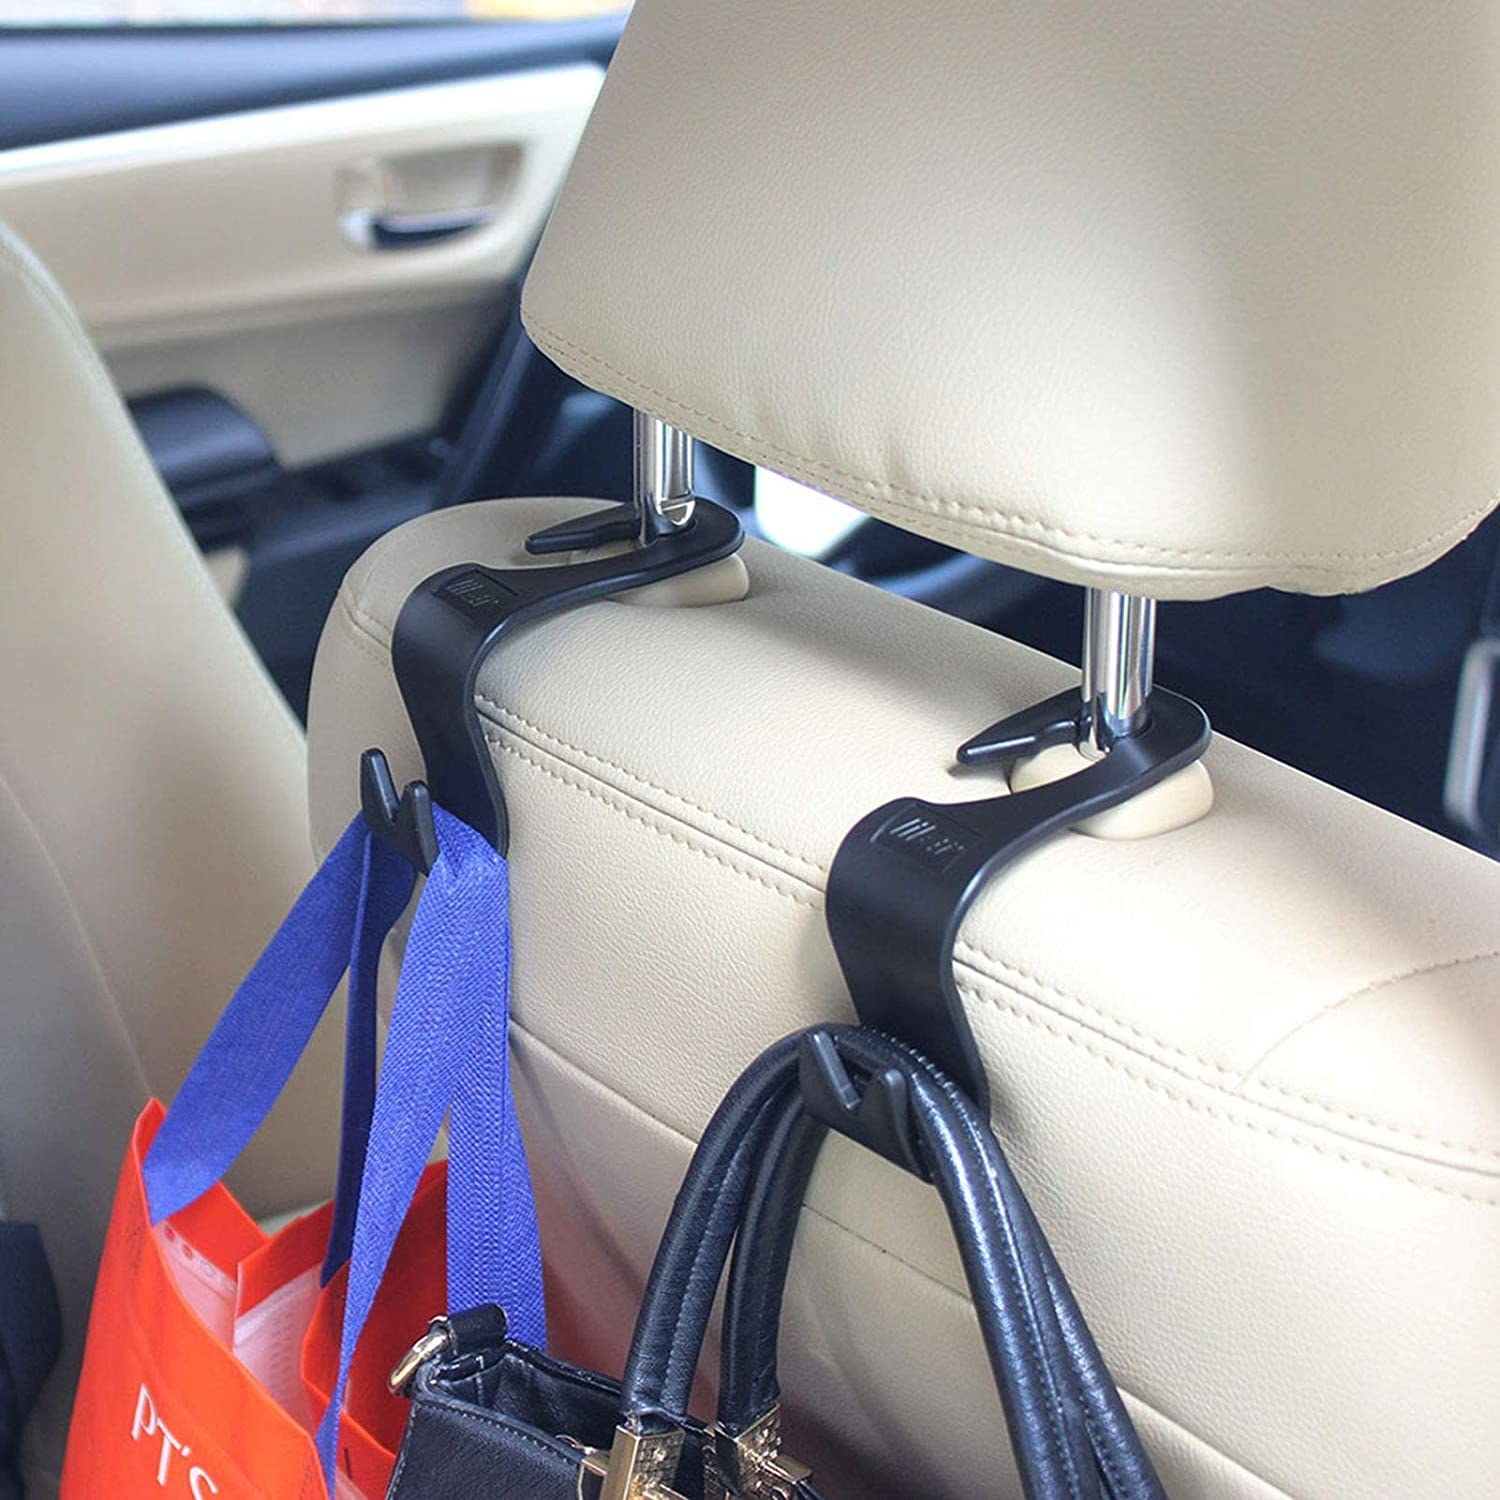 A purse and a bag hanging from hooks that are attached to a car head rest